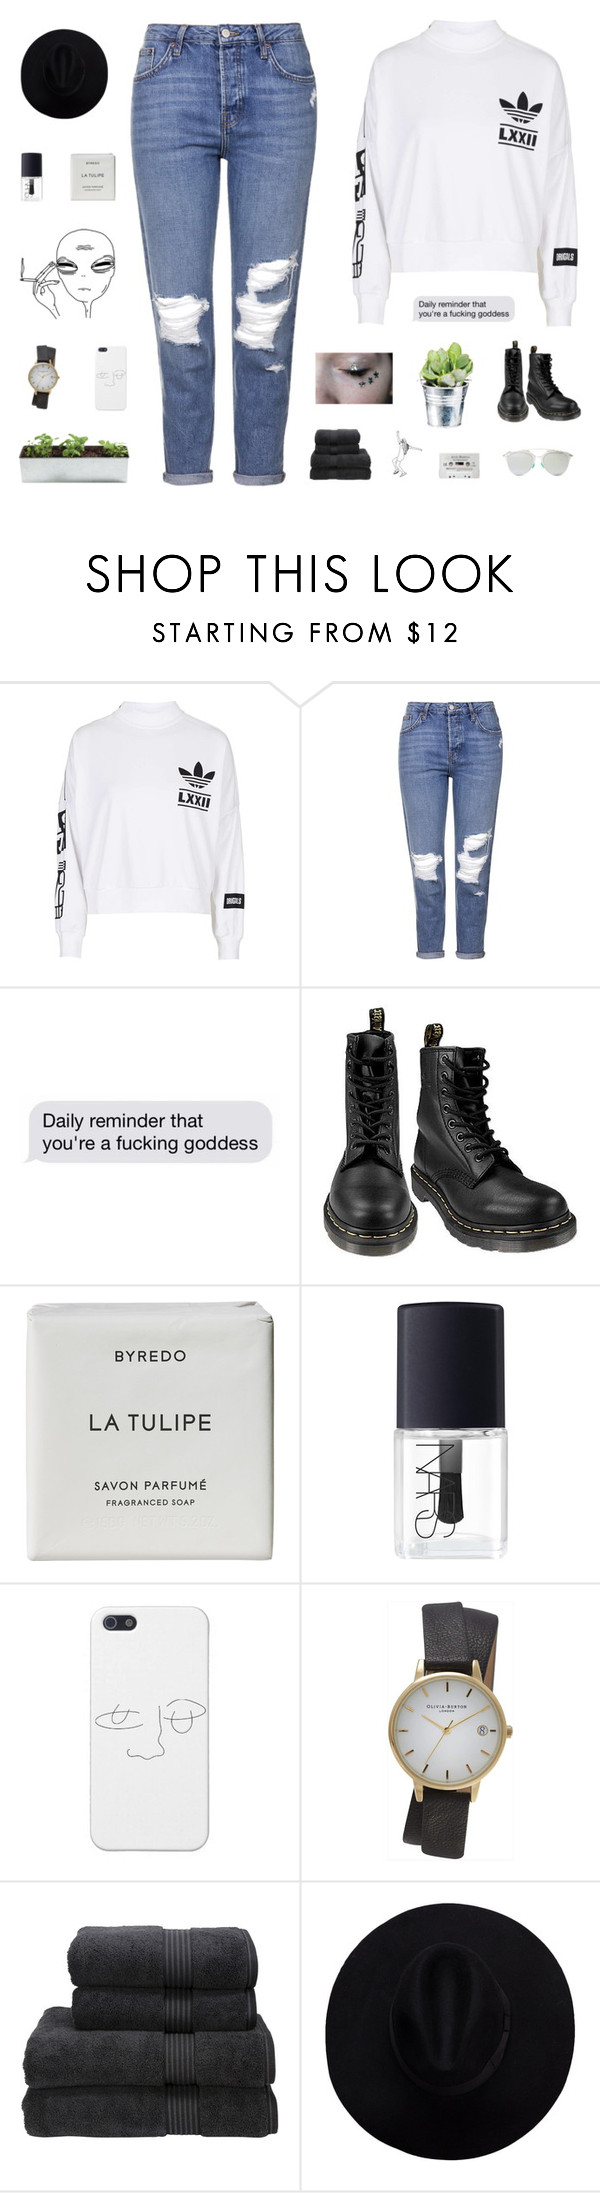 """it's not about reciprocation it's just all about me, a sycophantic, prophetic, socratic, junkie wannabe"" by smoothpeanutbutter ❤ liked on Polyvore featuring adidas, Topshop, CO, Dr. Martens, Byredo, NARS Cosmetics, Christy, Christian Dior, women's clothing and women"